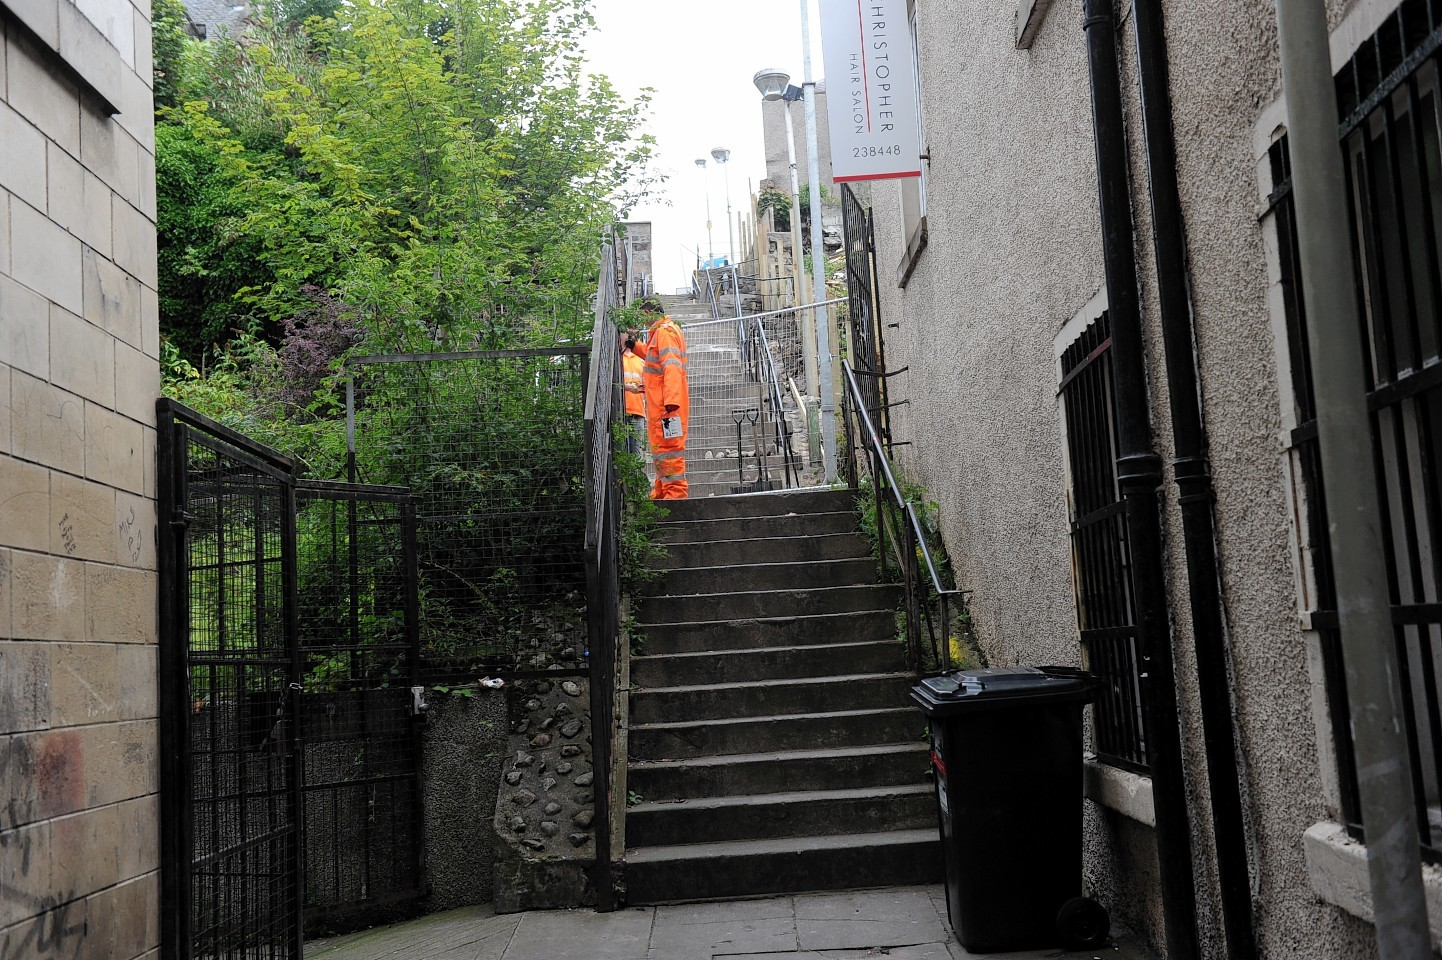 Raining's Stairs will benefit from a complete makeover with the steps, walls, railings and lighting all due to be refurbished